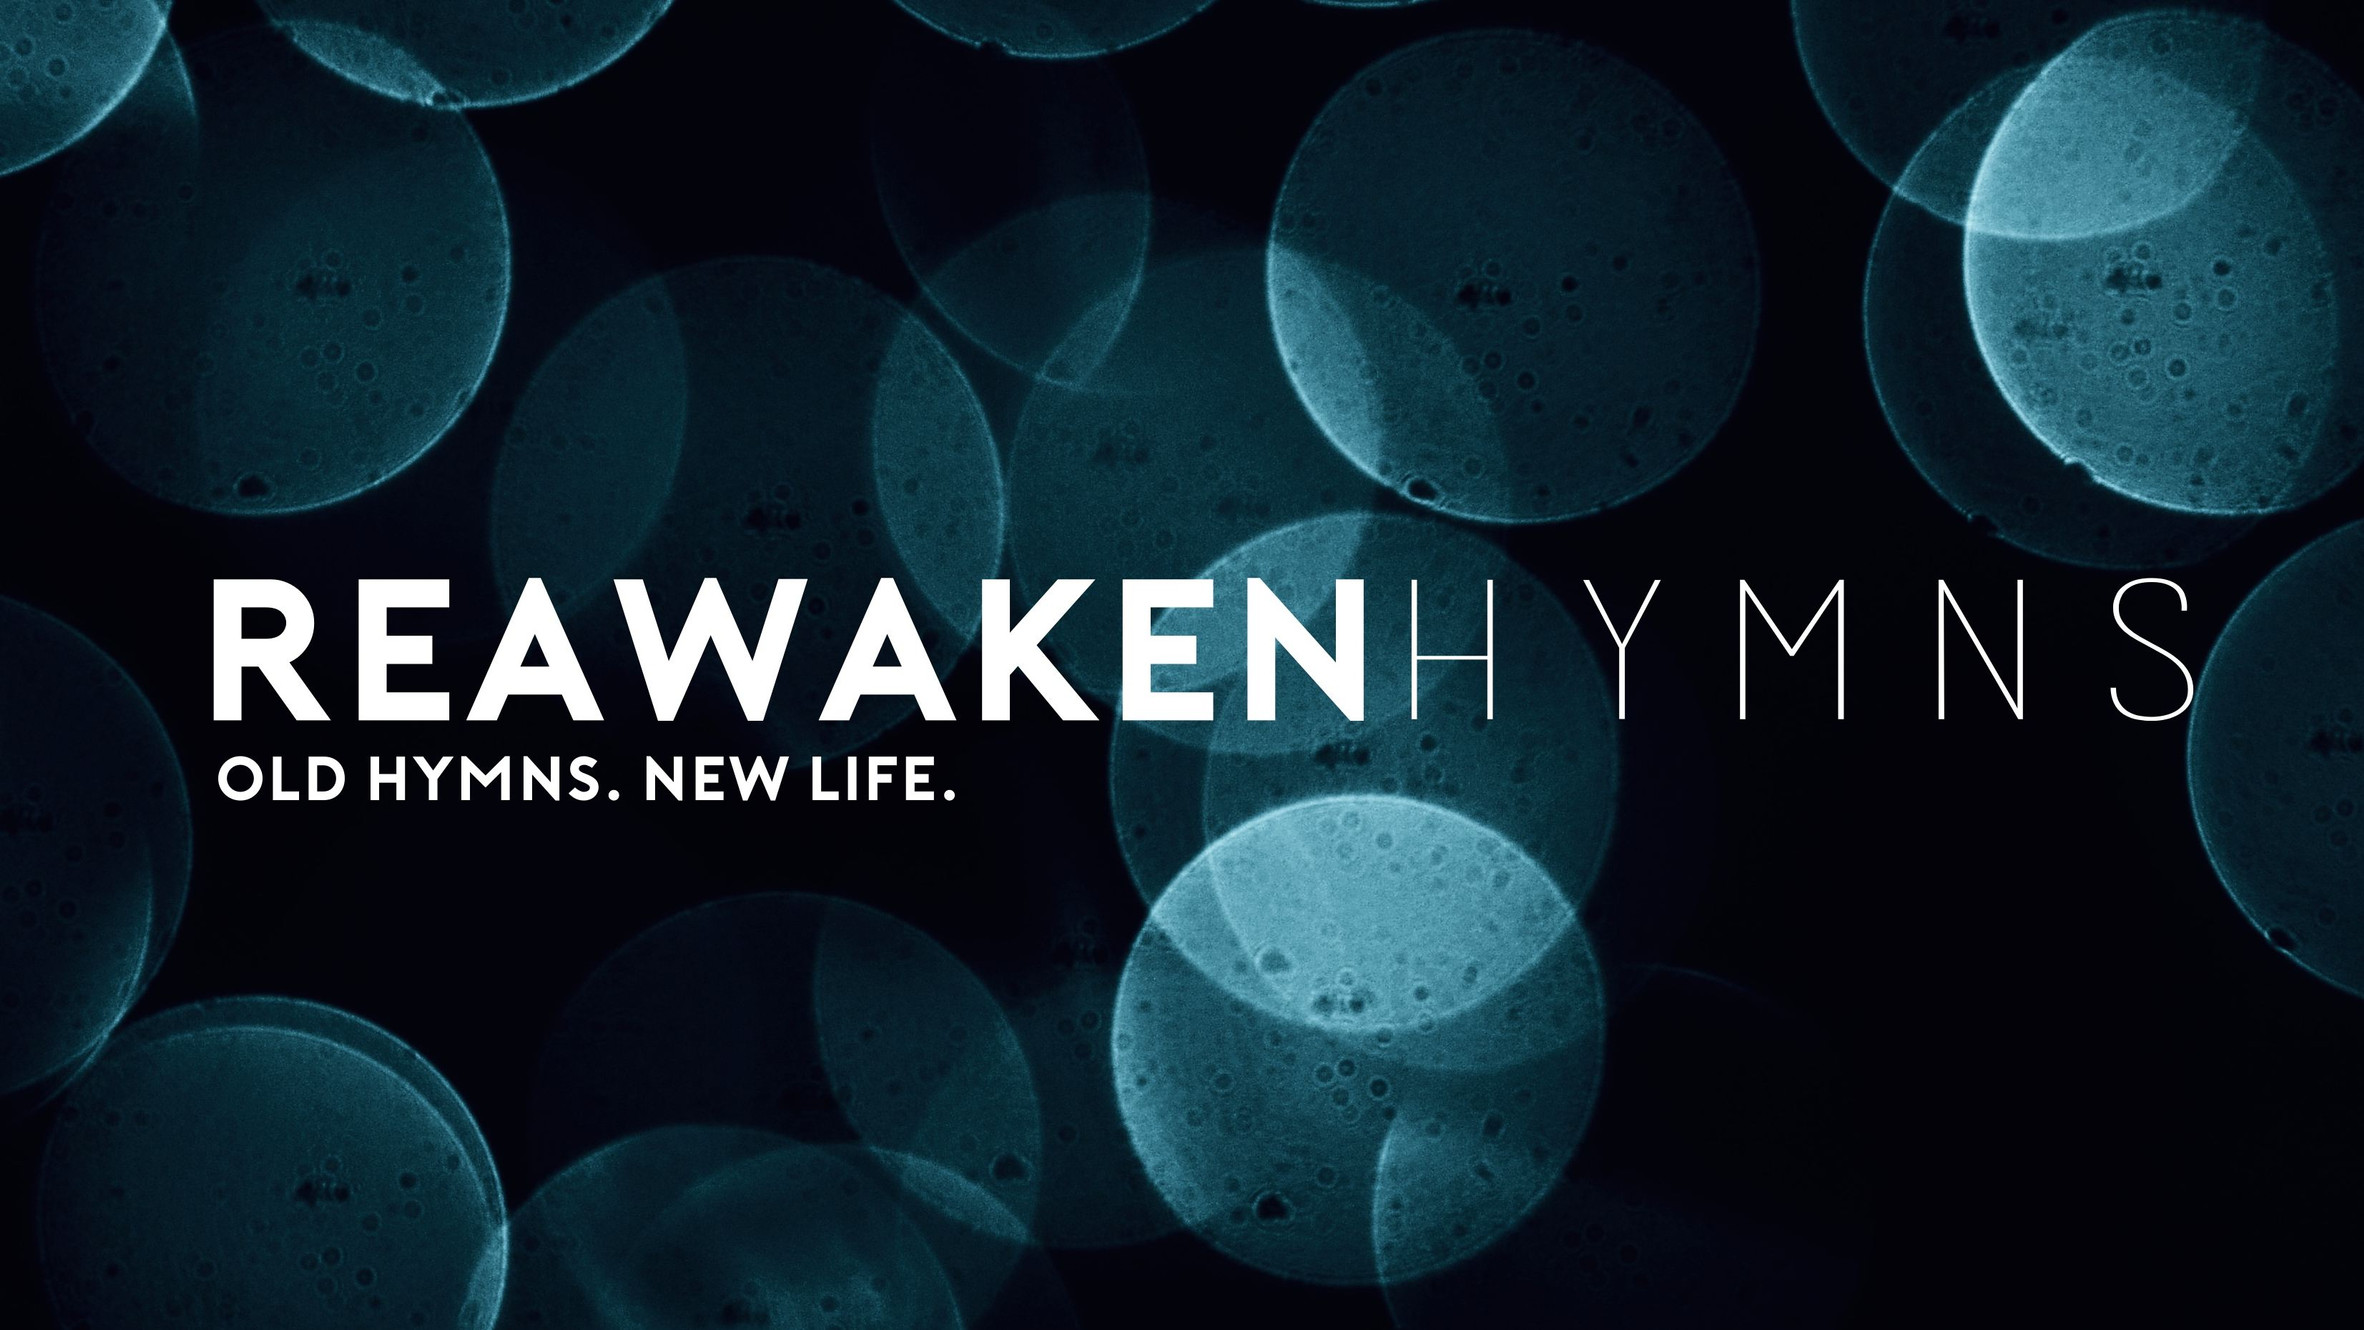 Reawaken Hymns | Modern Acoustic Hymns and Hymn Chords